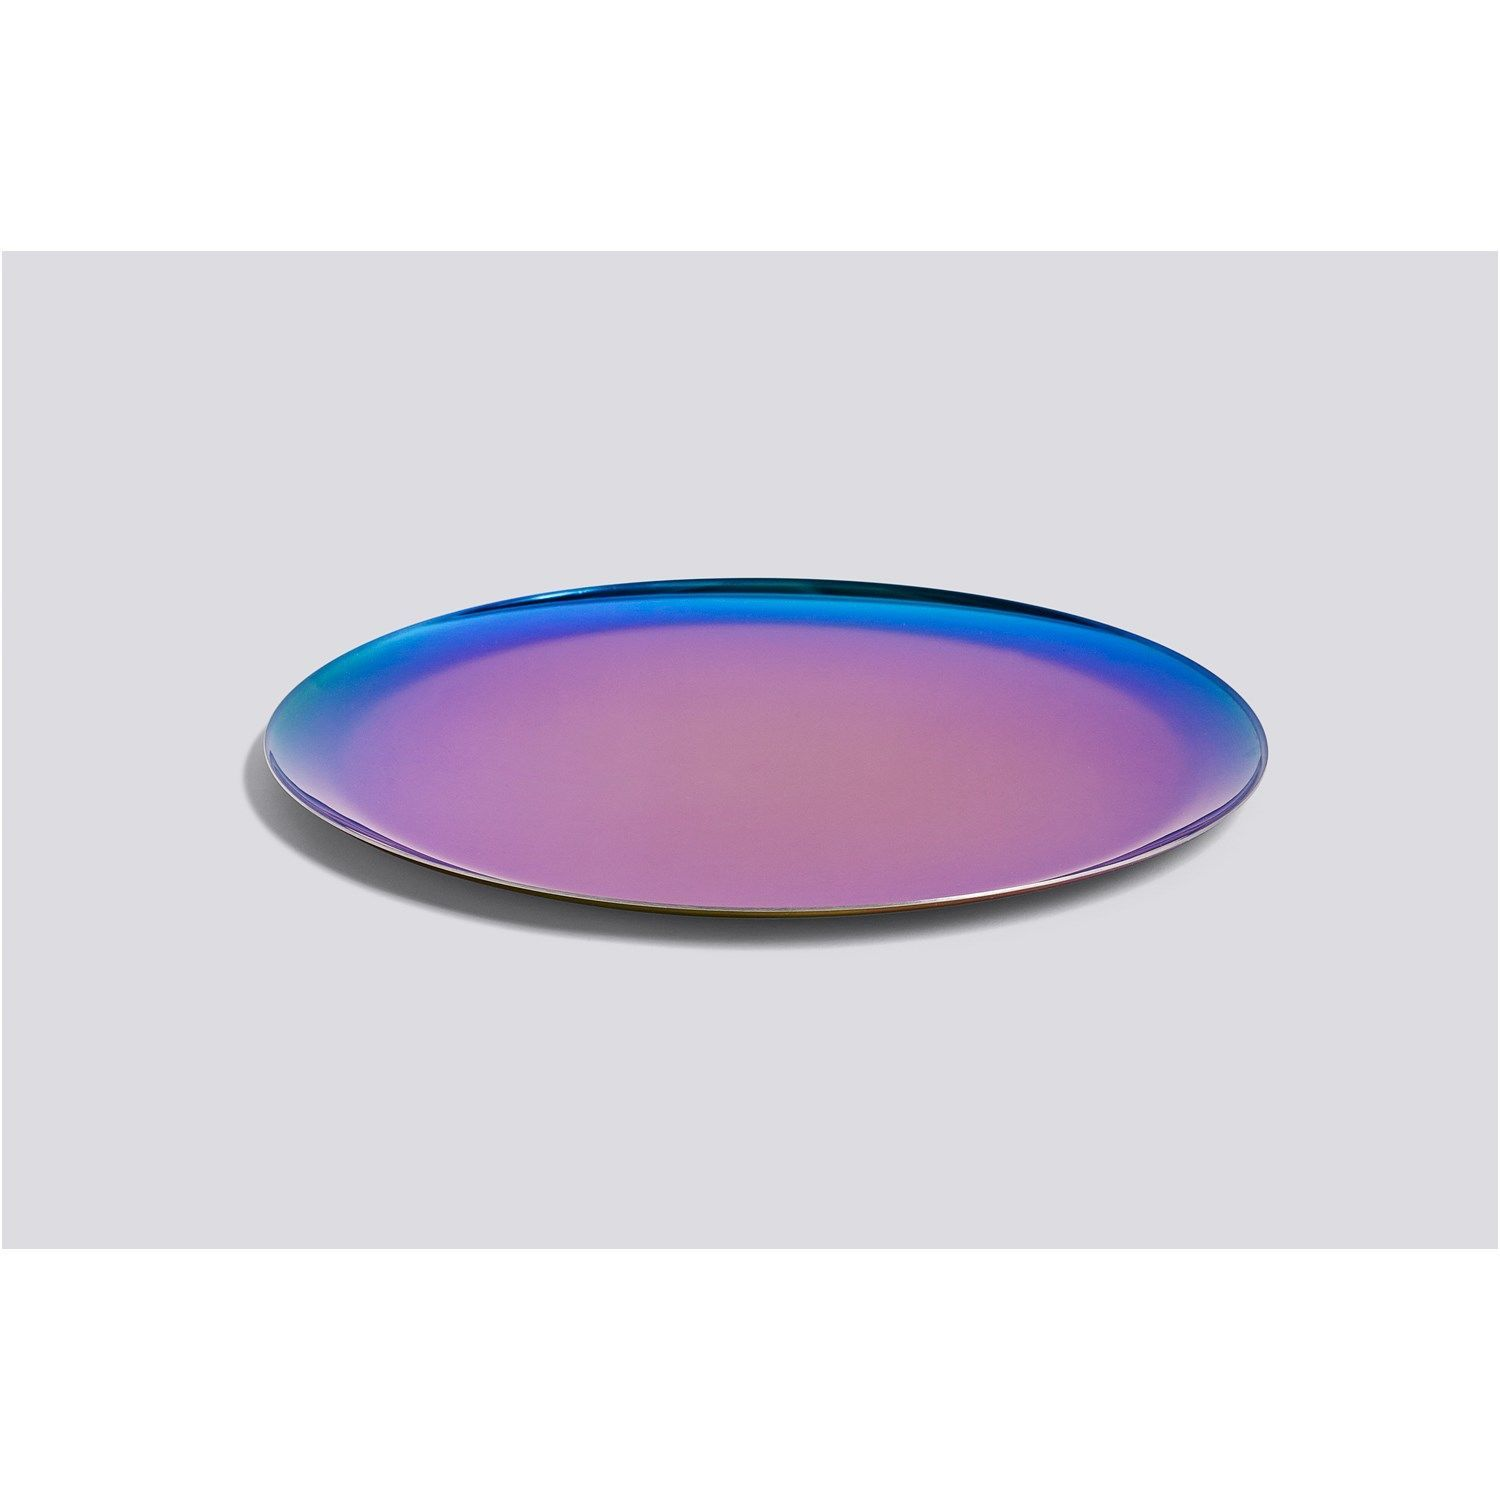 HAY bakke - Serving Tray - rainbow